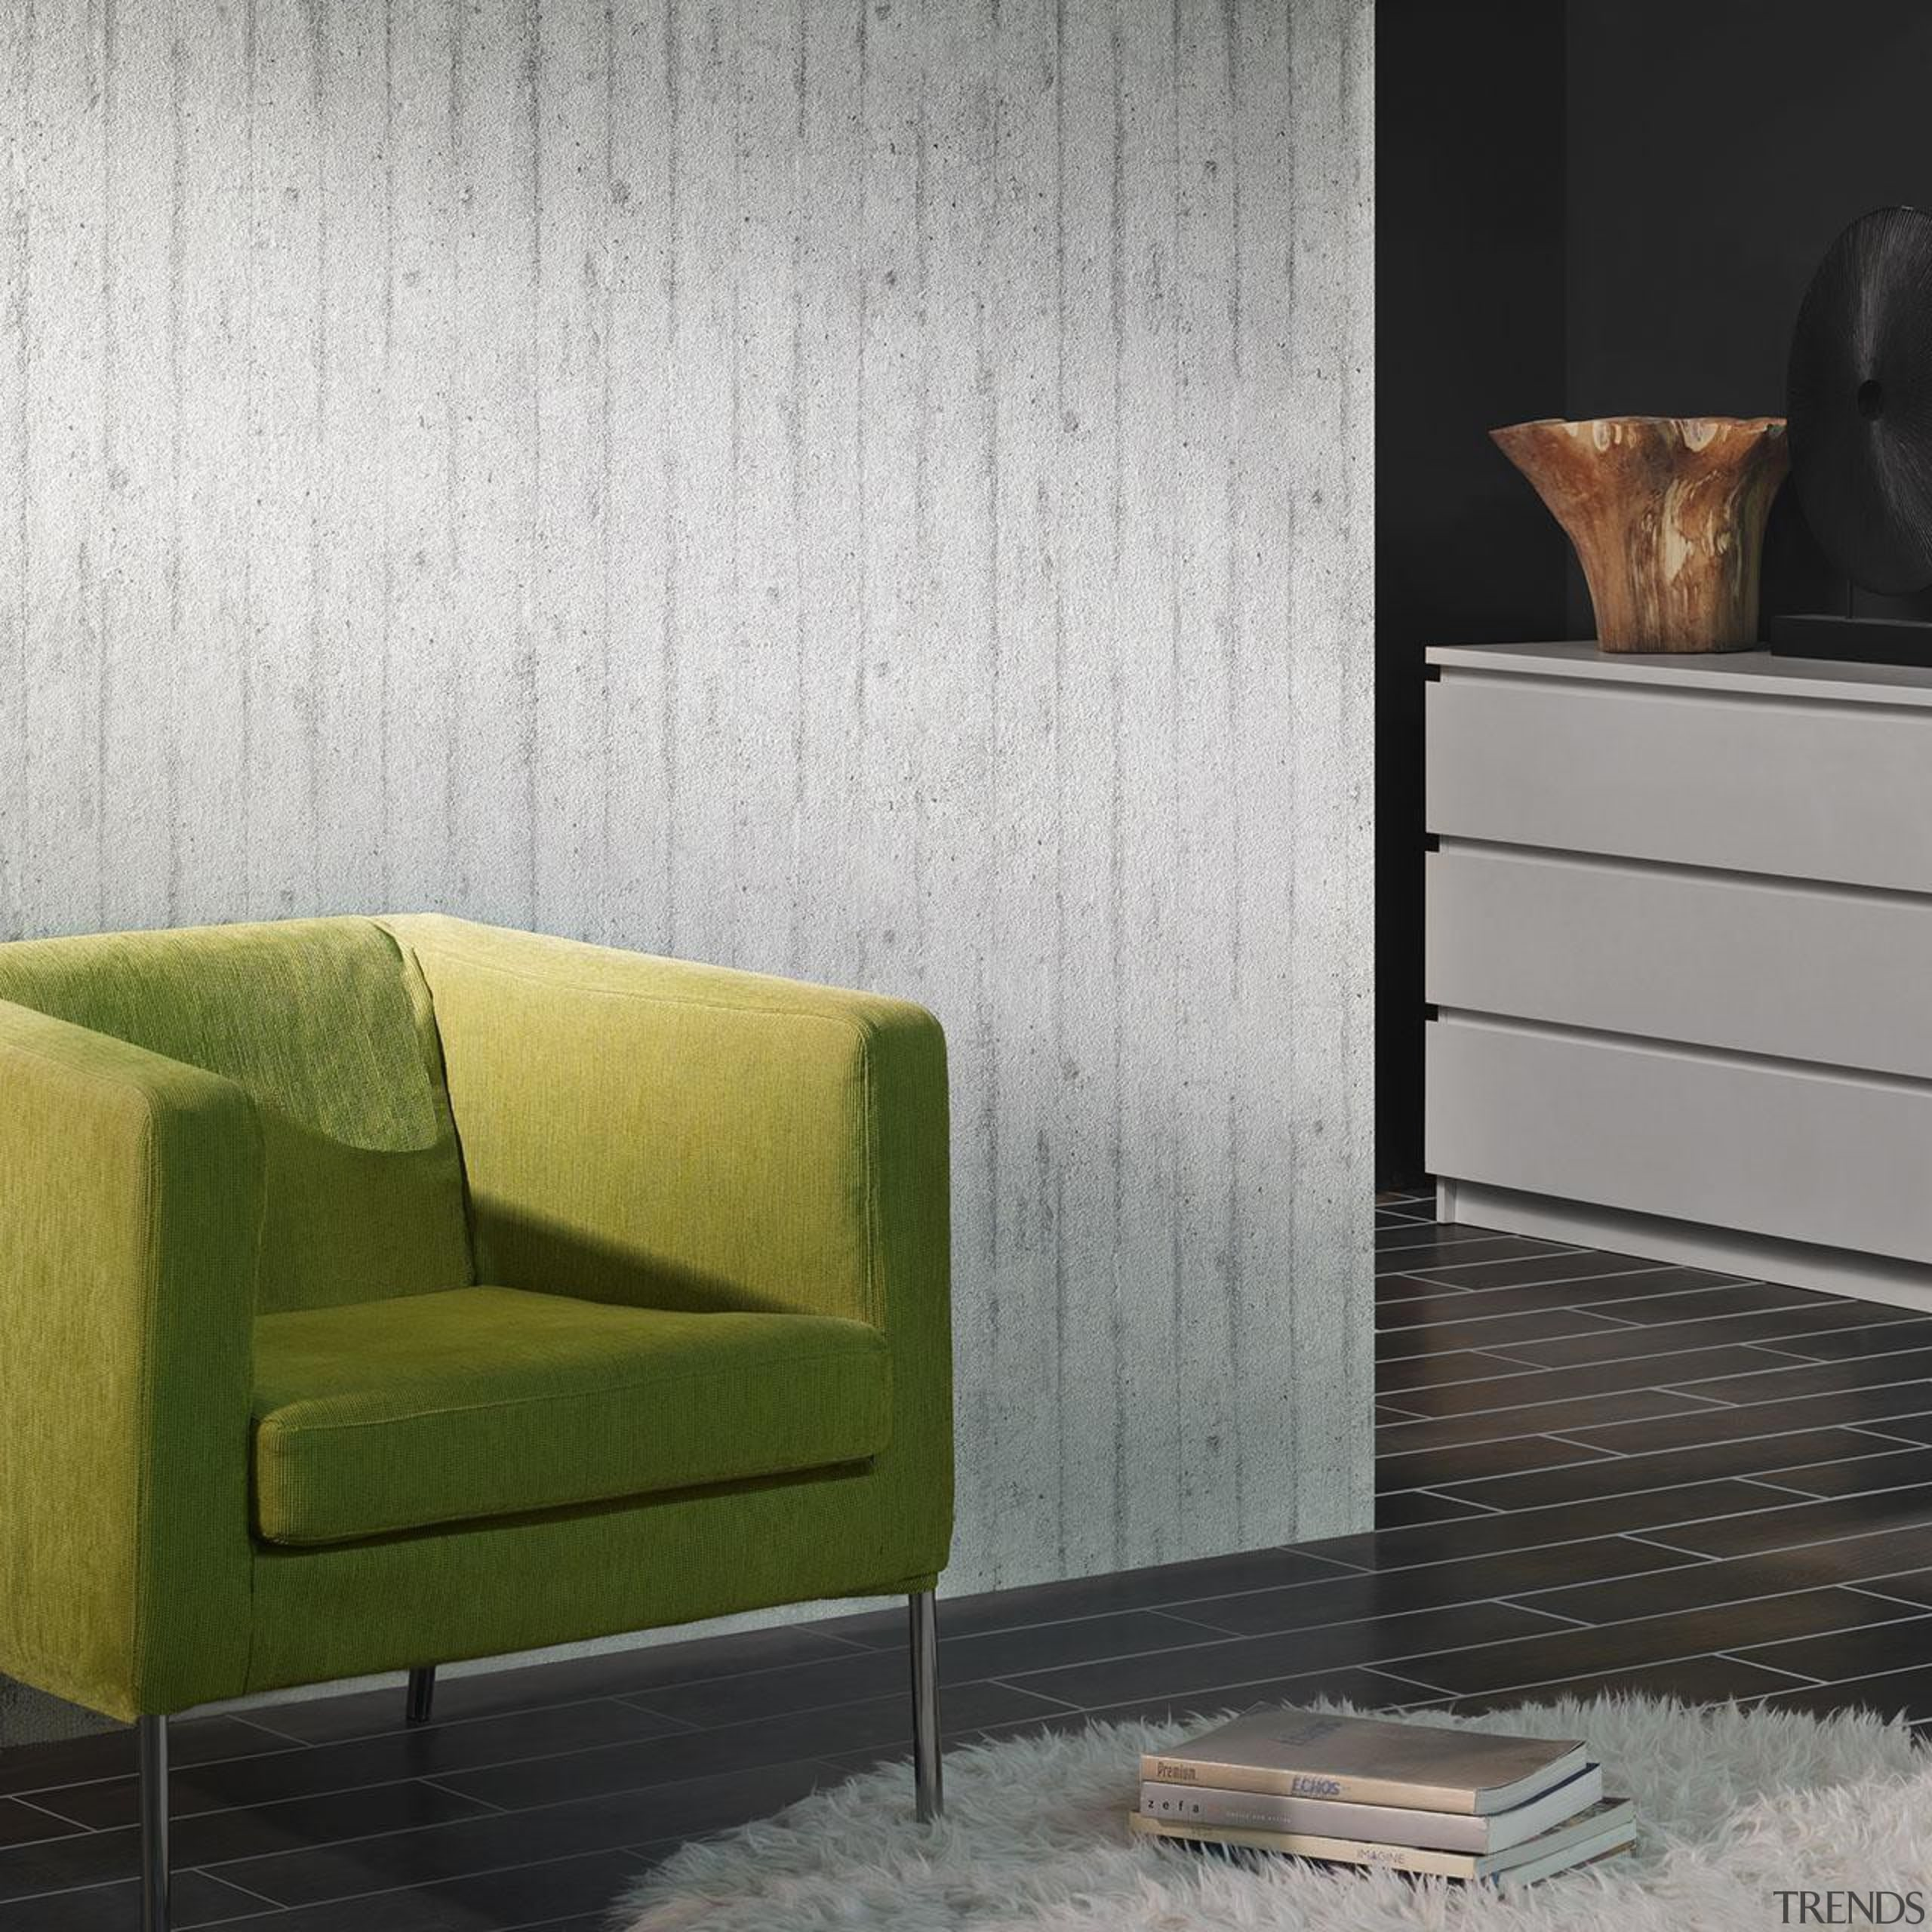 Modern Style Range - angle | chair | angle, chair, chest of drawers, coffee table, couch, floor, flooring, furniture, hardwood, interior design, living room, product design, sofa bed, table, wall, wood, wood flooring, wood stain, gray, white